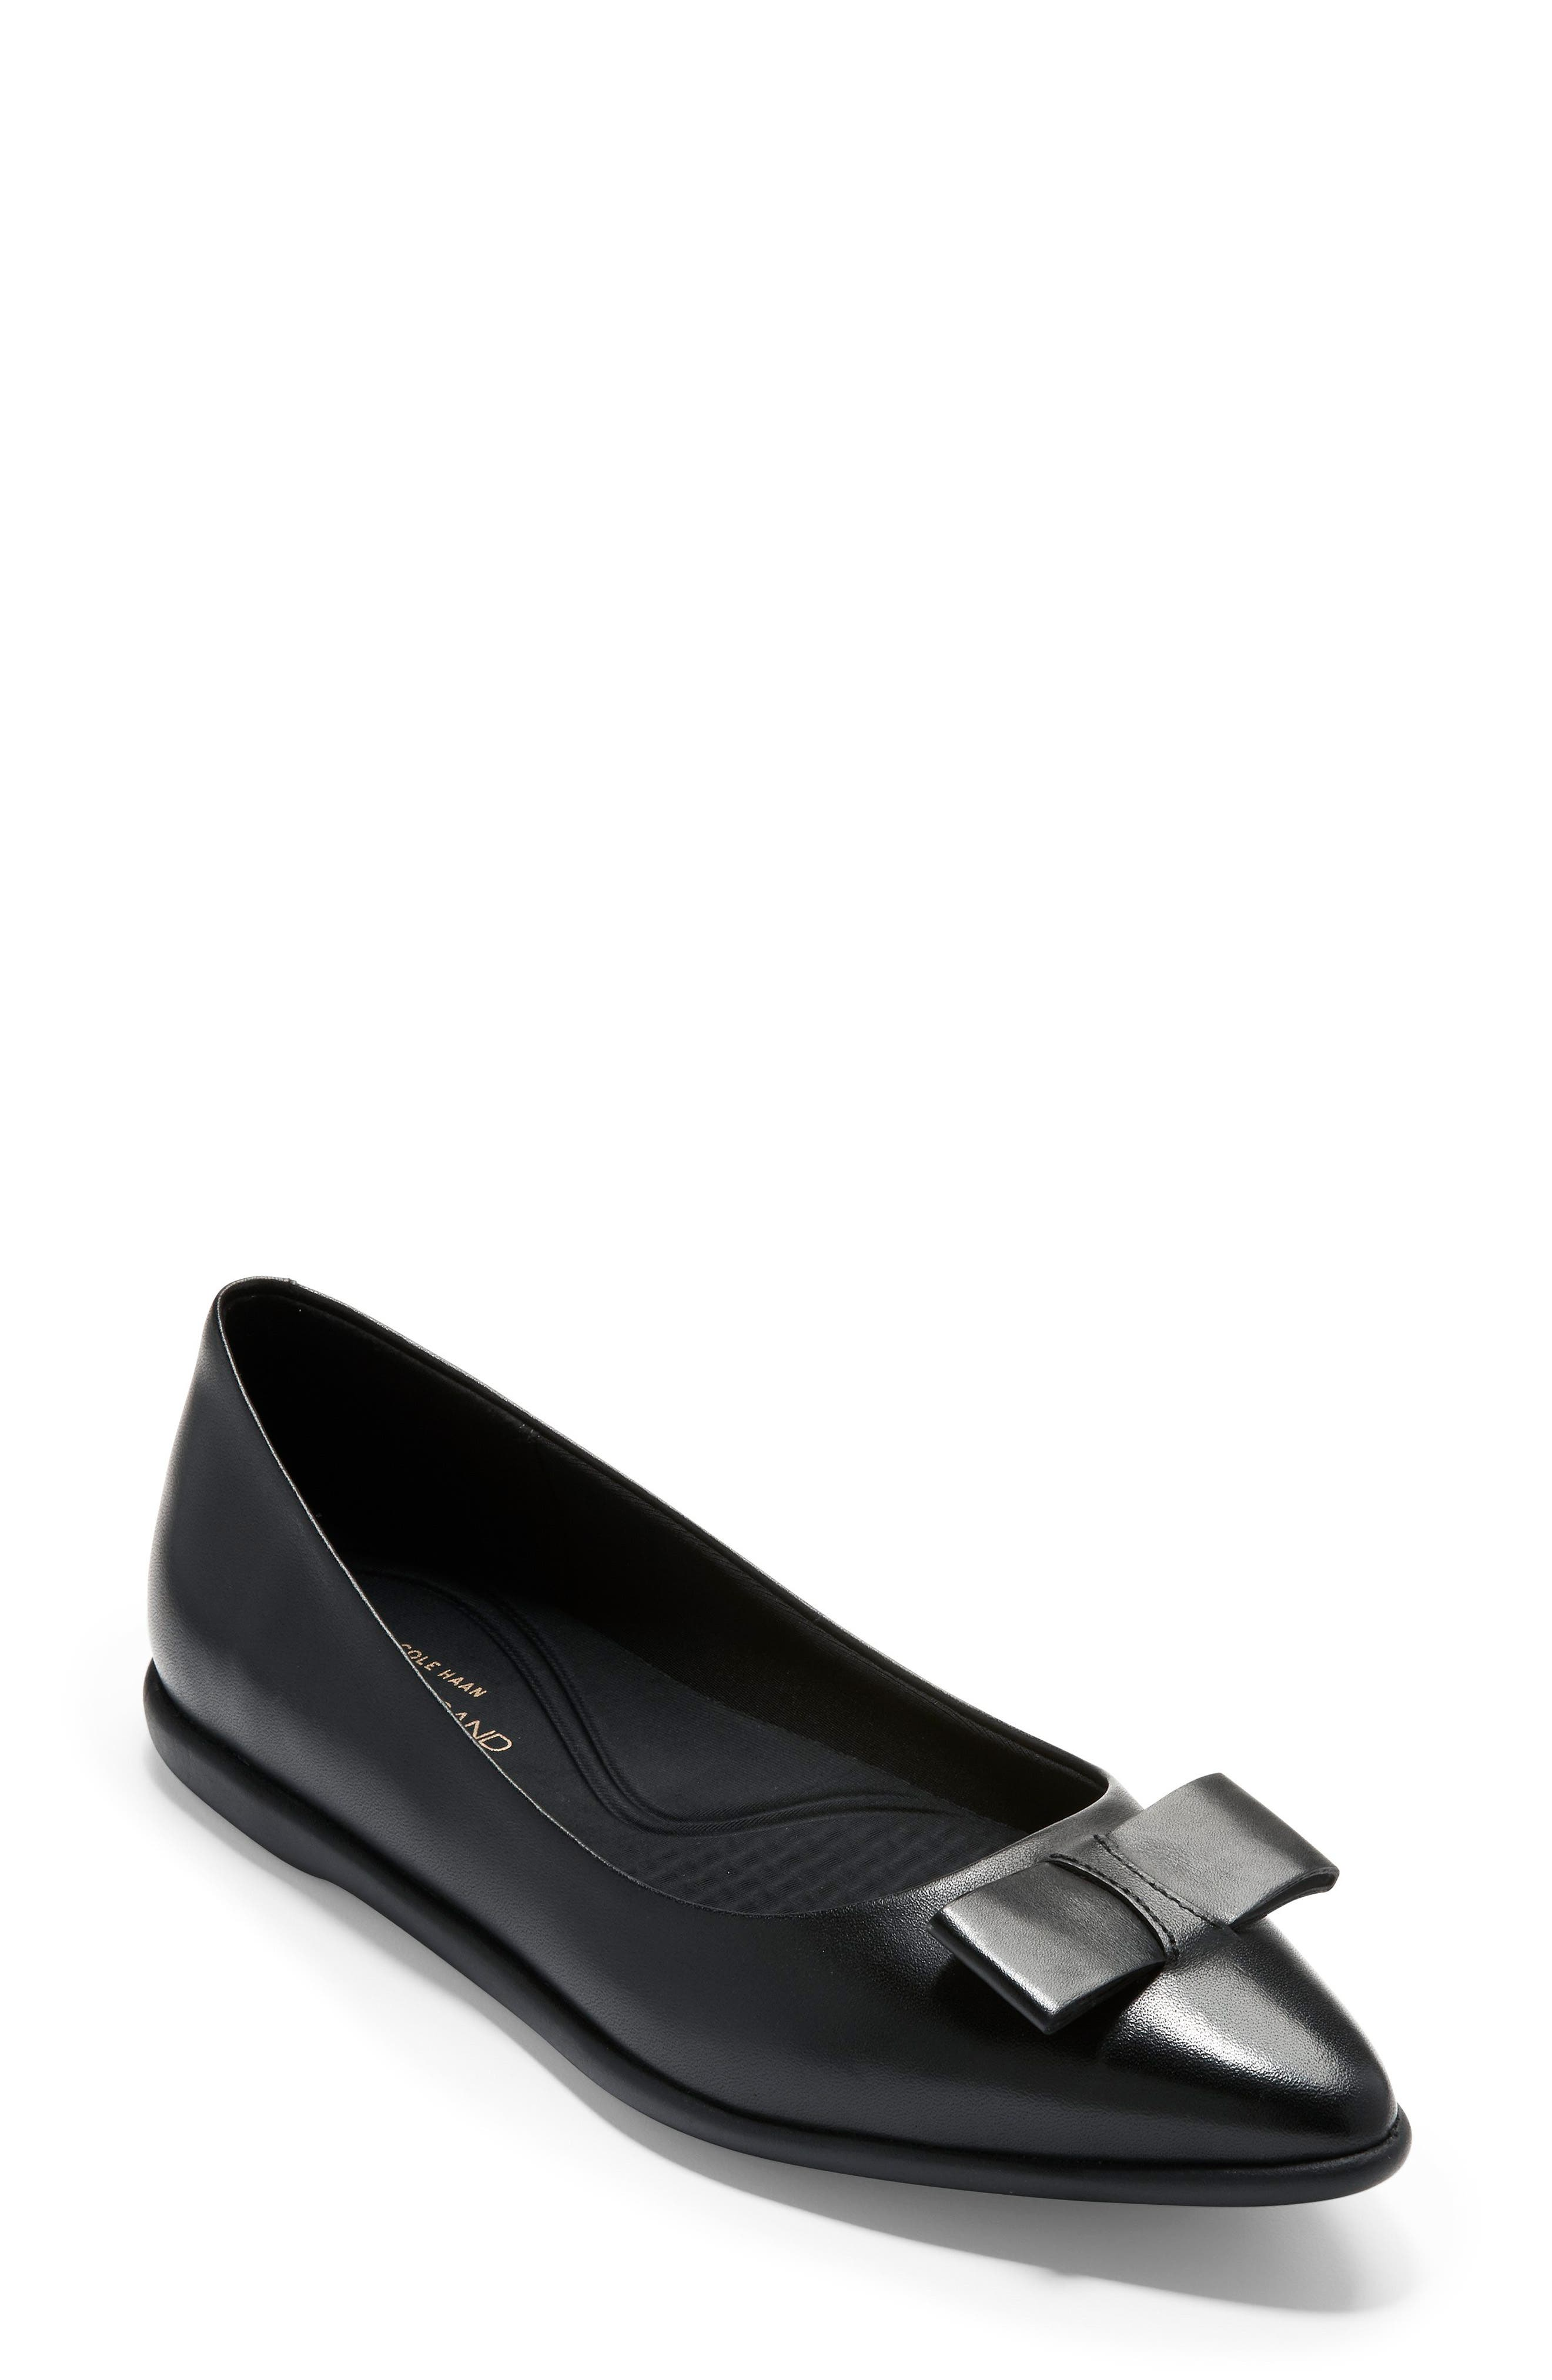 COLE HAAN, 3.ZeroGrand Skimmer Flat, Main thumbnail 1, color, BLACK LEATHER